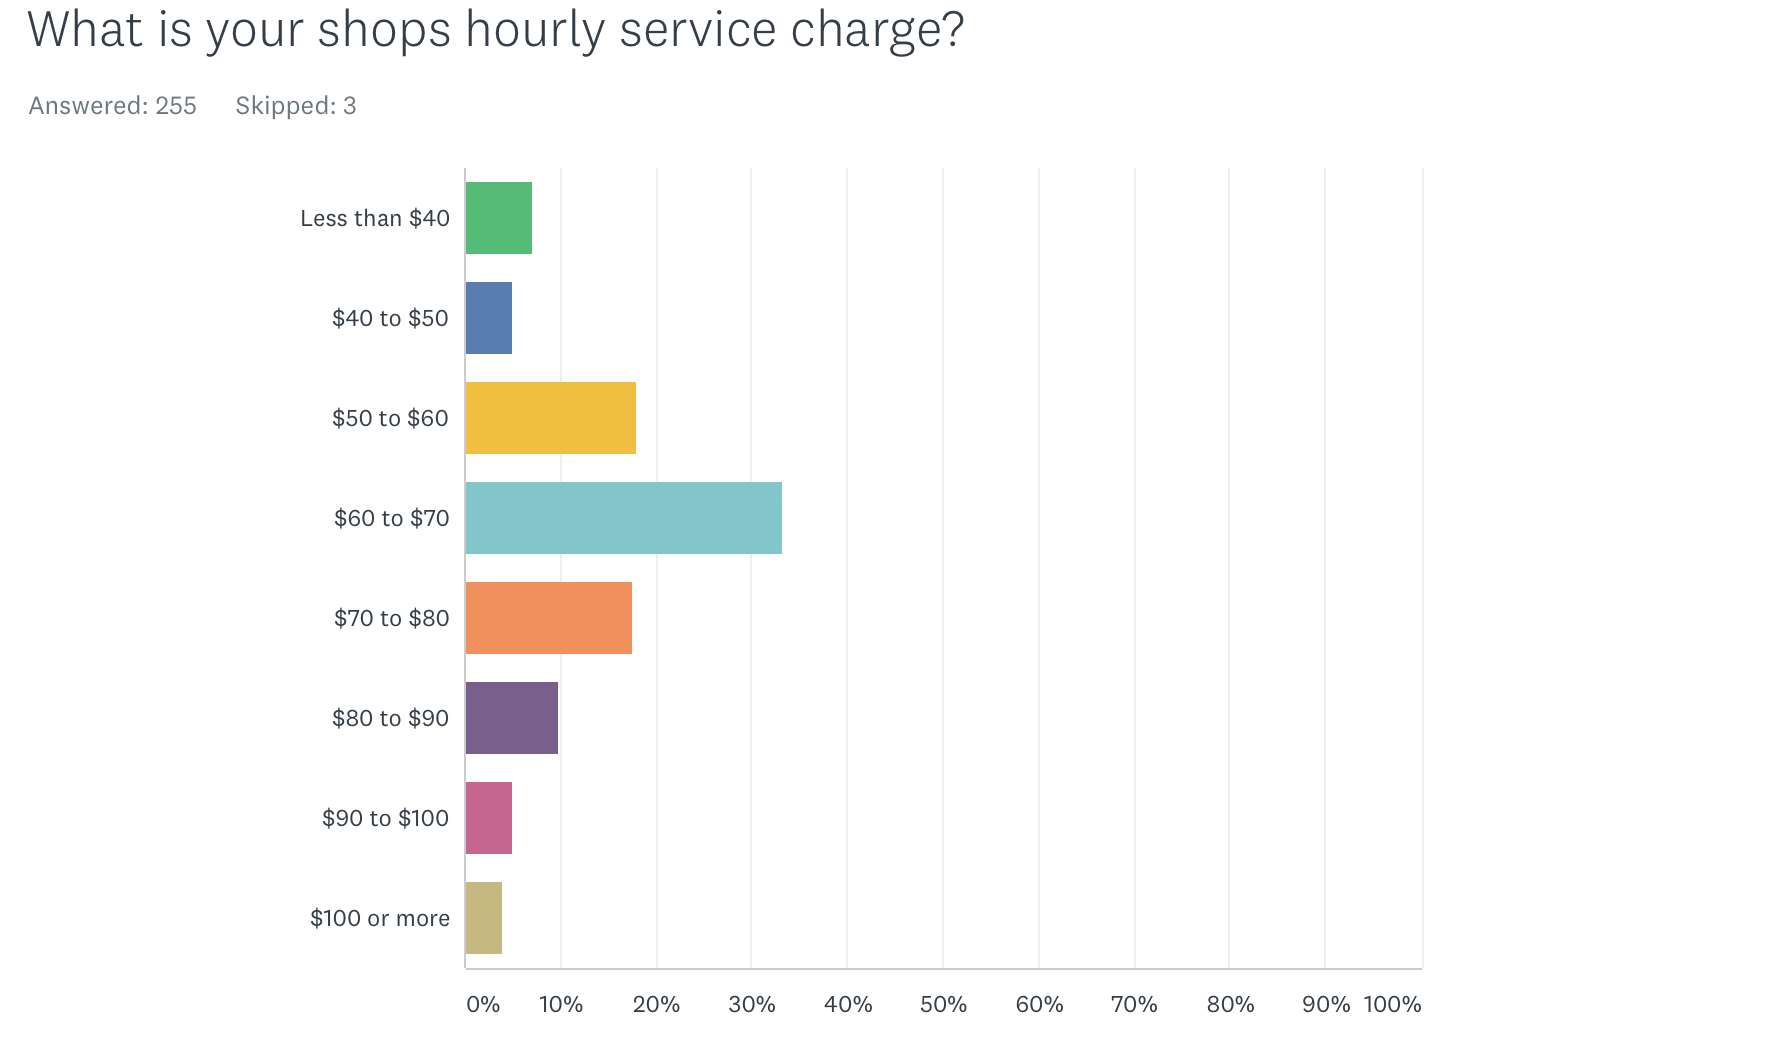 Hourly service charges at bike shops. Source: 2017 PBMA survey.